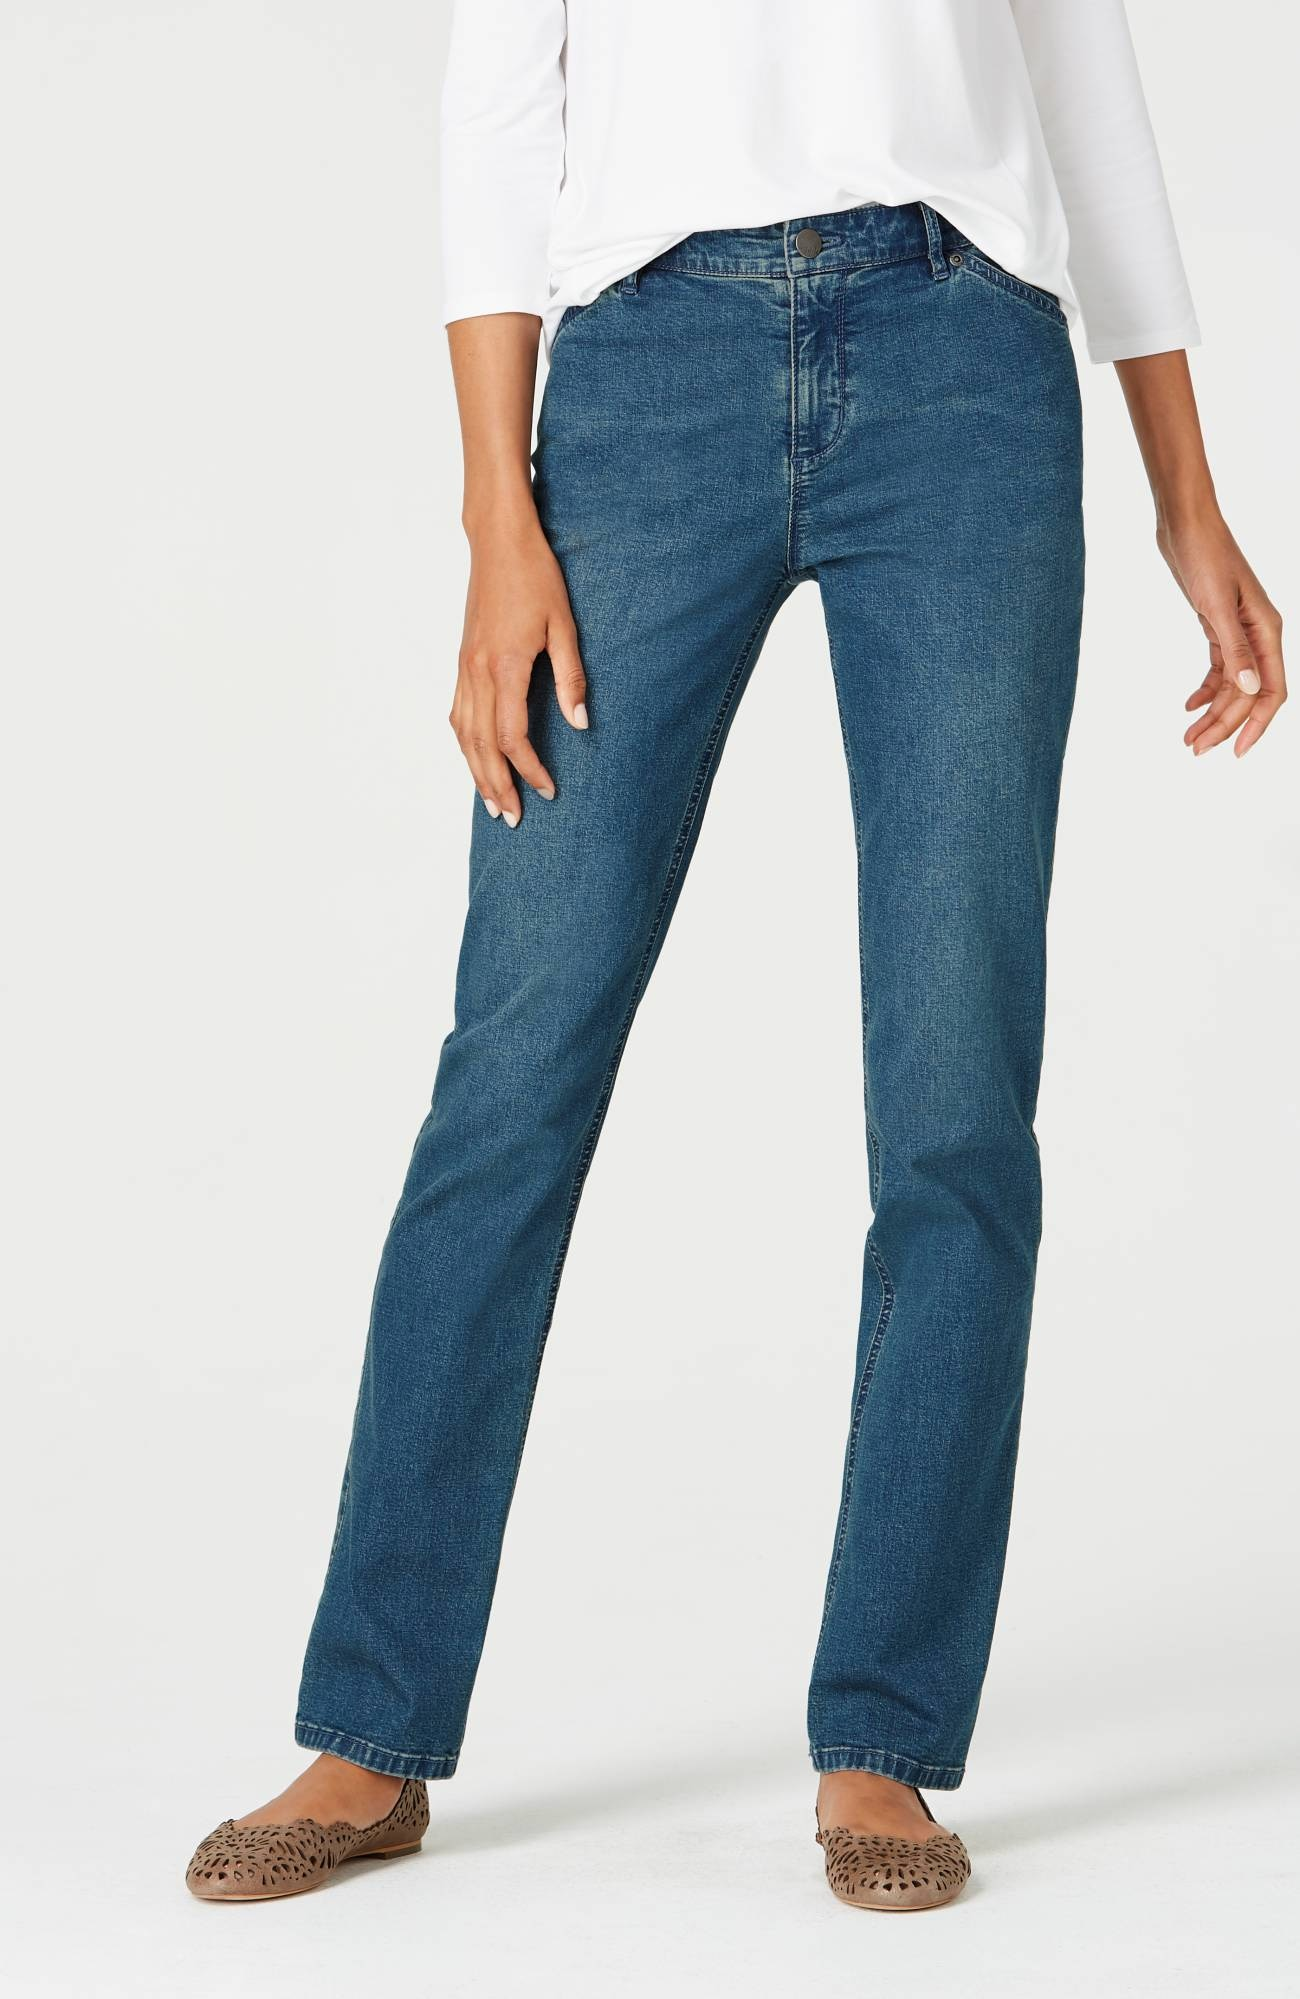 Tried & True straight-leg jeans